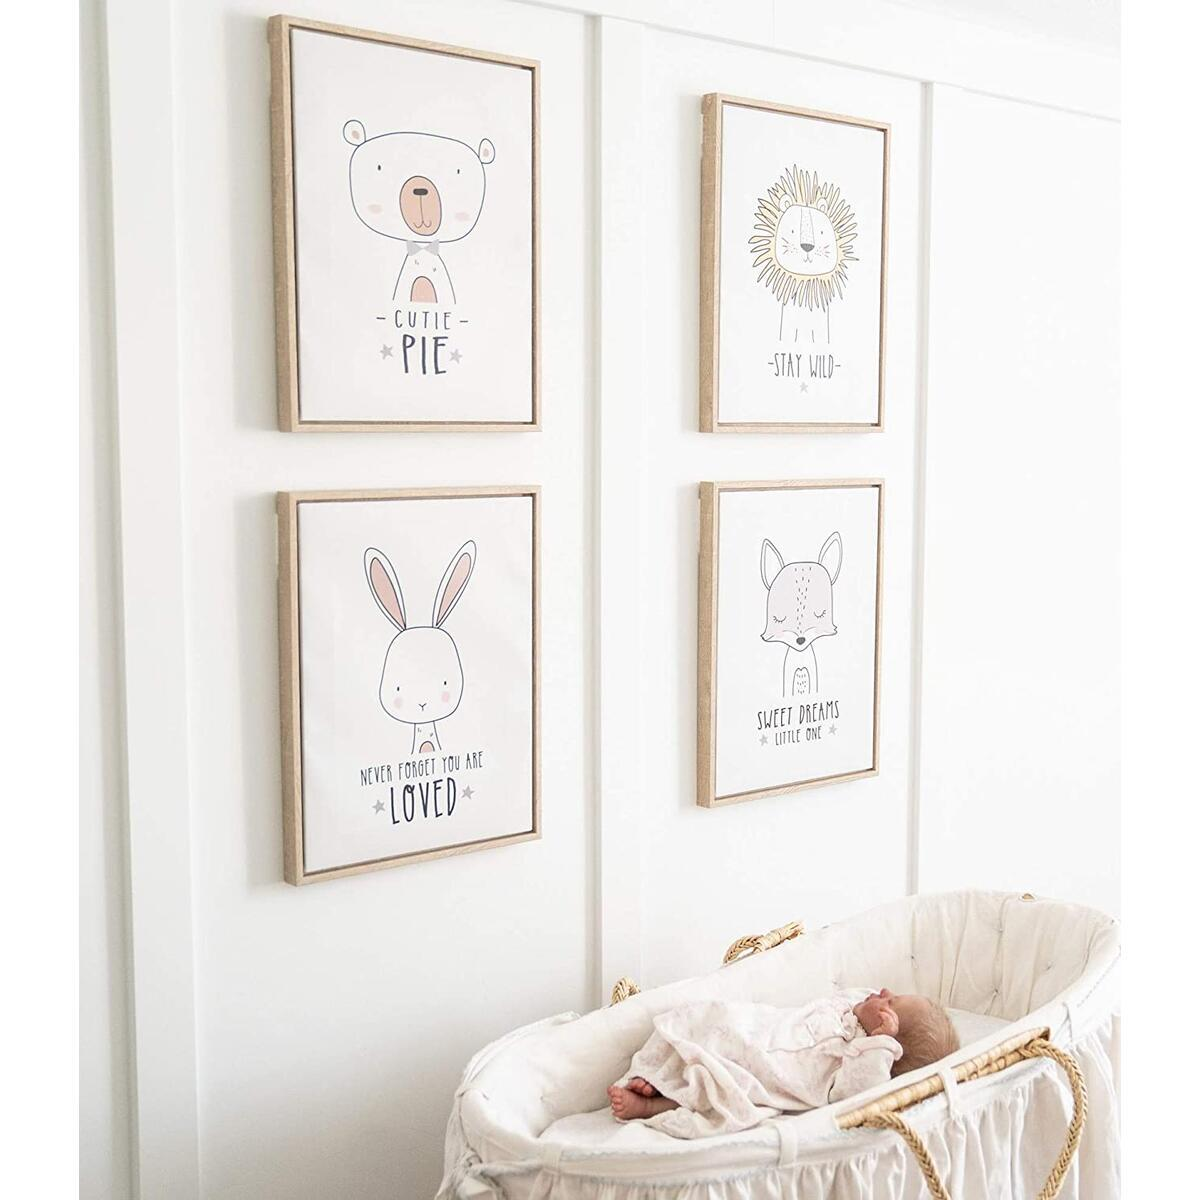 Maison Mia Framed Canvas Cute Sweet Animals Wall Art Décor Set of 4 (12 x 16 in) for Baby Toddler Nursery Girl Boy Neutral Kids Childrens Bedroom Playroom